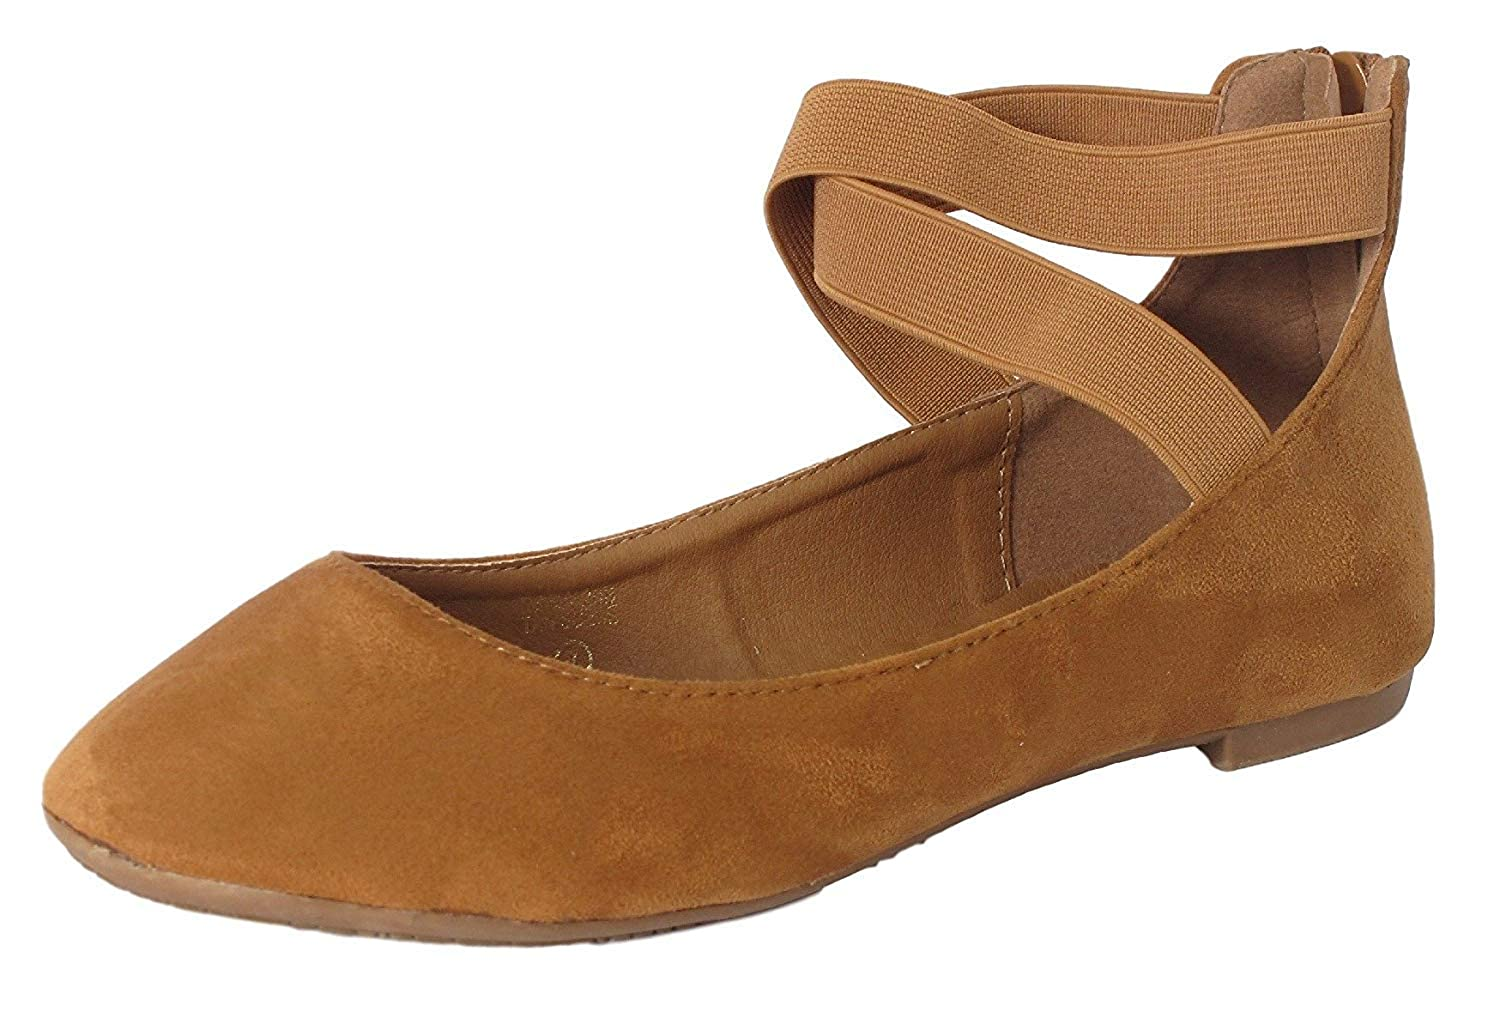 Brown Icerom Women's Classic Ballerina Flats Elastic Crossing Straps